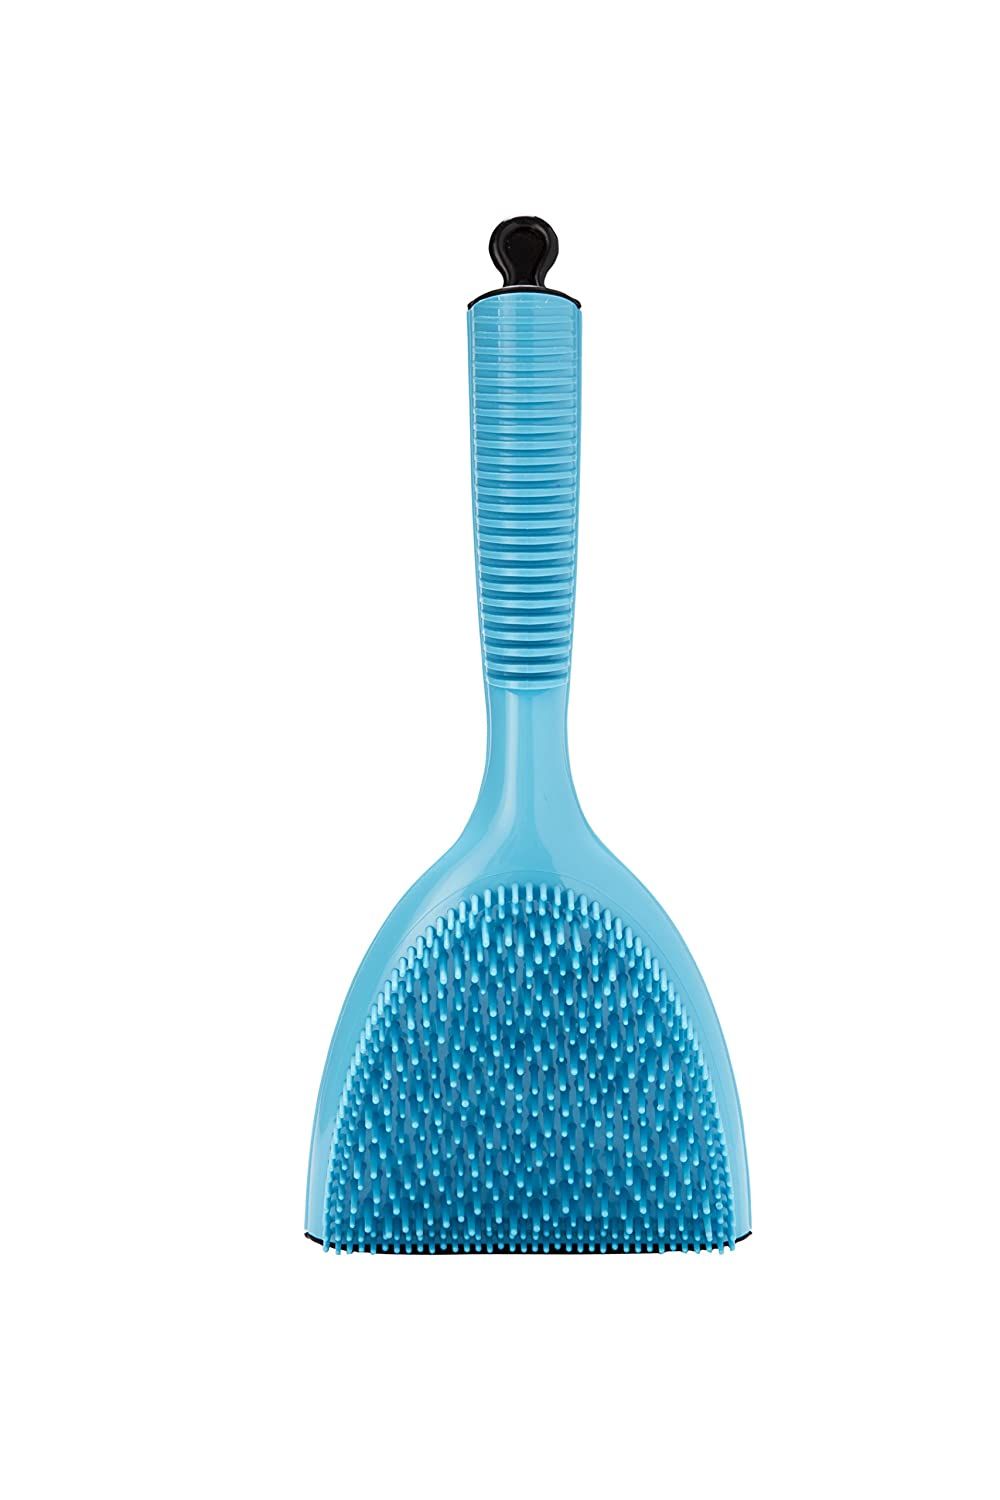 Michel Mercier Detangling Brush for Pet - Pet Brush for Grooming and Deshedding Dogs and Cats - Free Tick Remover Tool Included t (Thick Coat)